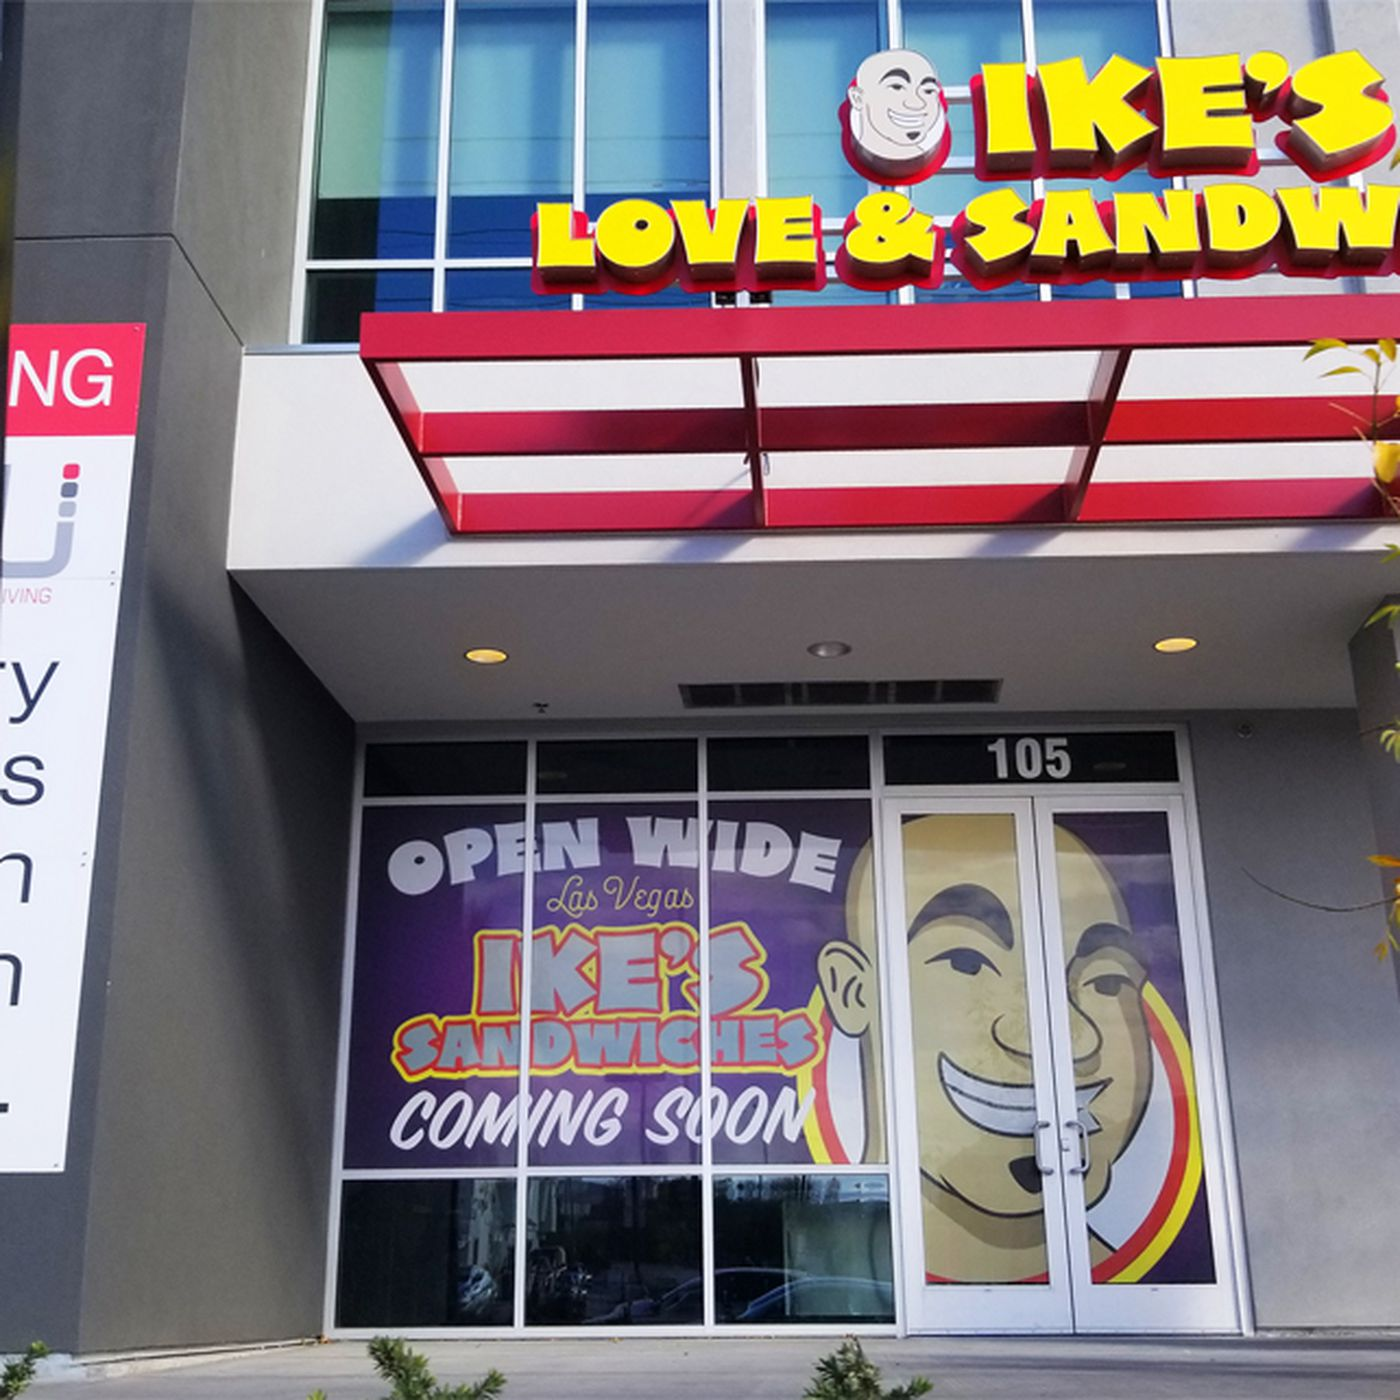 Ike S Reveals An Opening Date And Exclusive Sandwiches Near Unlv Eater Vegas The unlv bookstore, located south of the student union was renovated in 2000 to better serve the campus. exclusive sandwiches near unlv